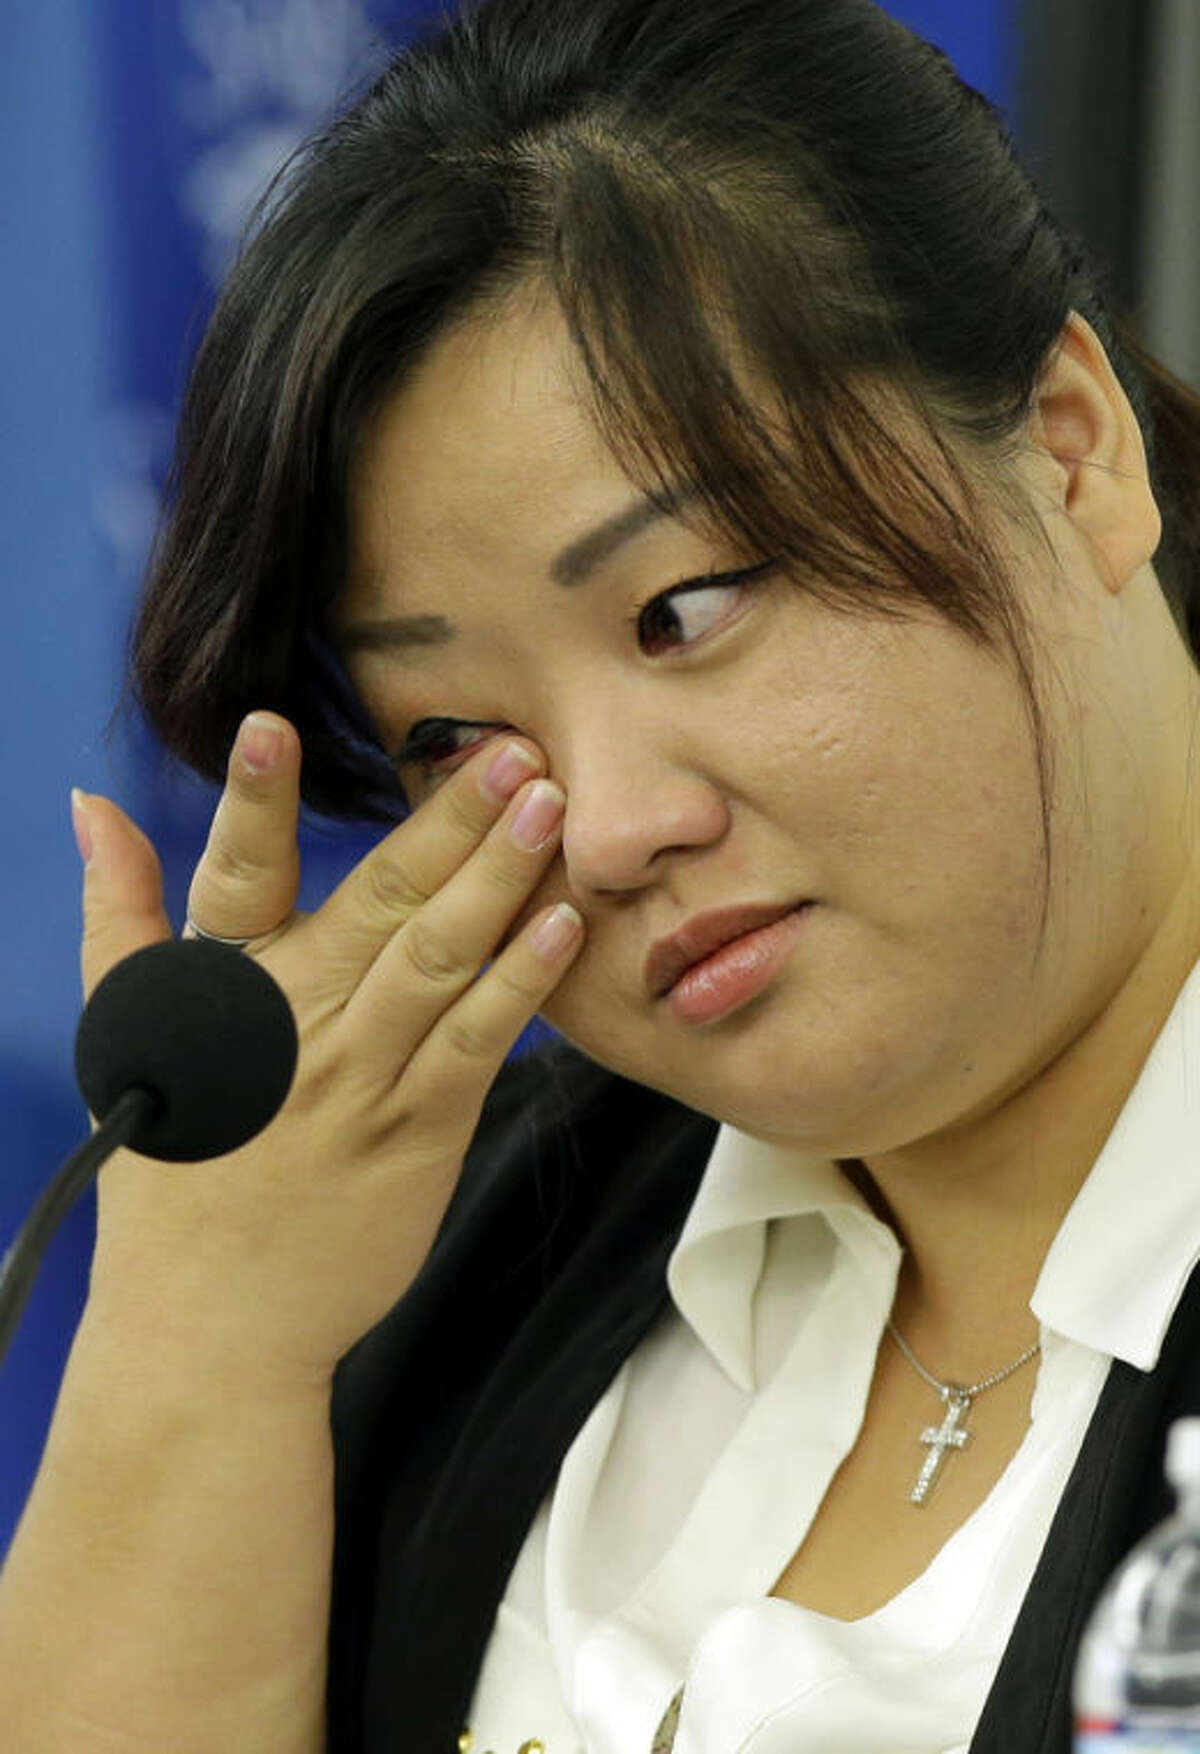 Jin hye Jo wipes a tear as she testifies during a hearing of the United Nations mandated Commission of Inquiry about the human rights situation in the Democratic People's Republic of Korea, at the Johns Hopkins School of Advanced International Studies, Wednesday, Oct. 30, 2013, in Washington. Jo wiped the tear while talking about her brother dying in her arms. (AP Photo/Alex Brandon)